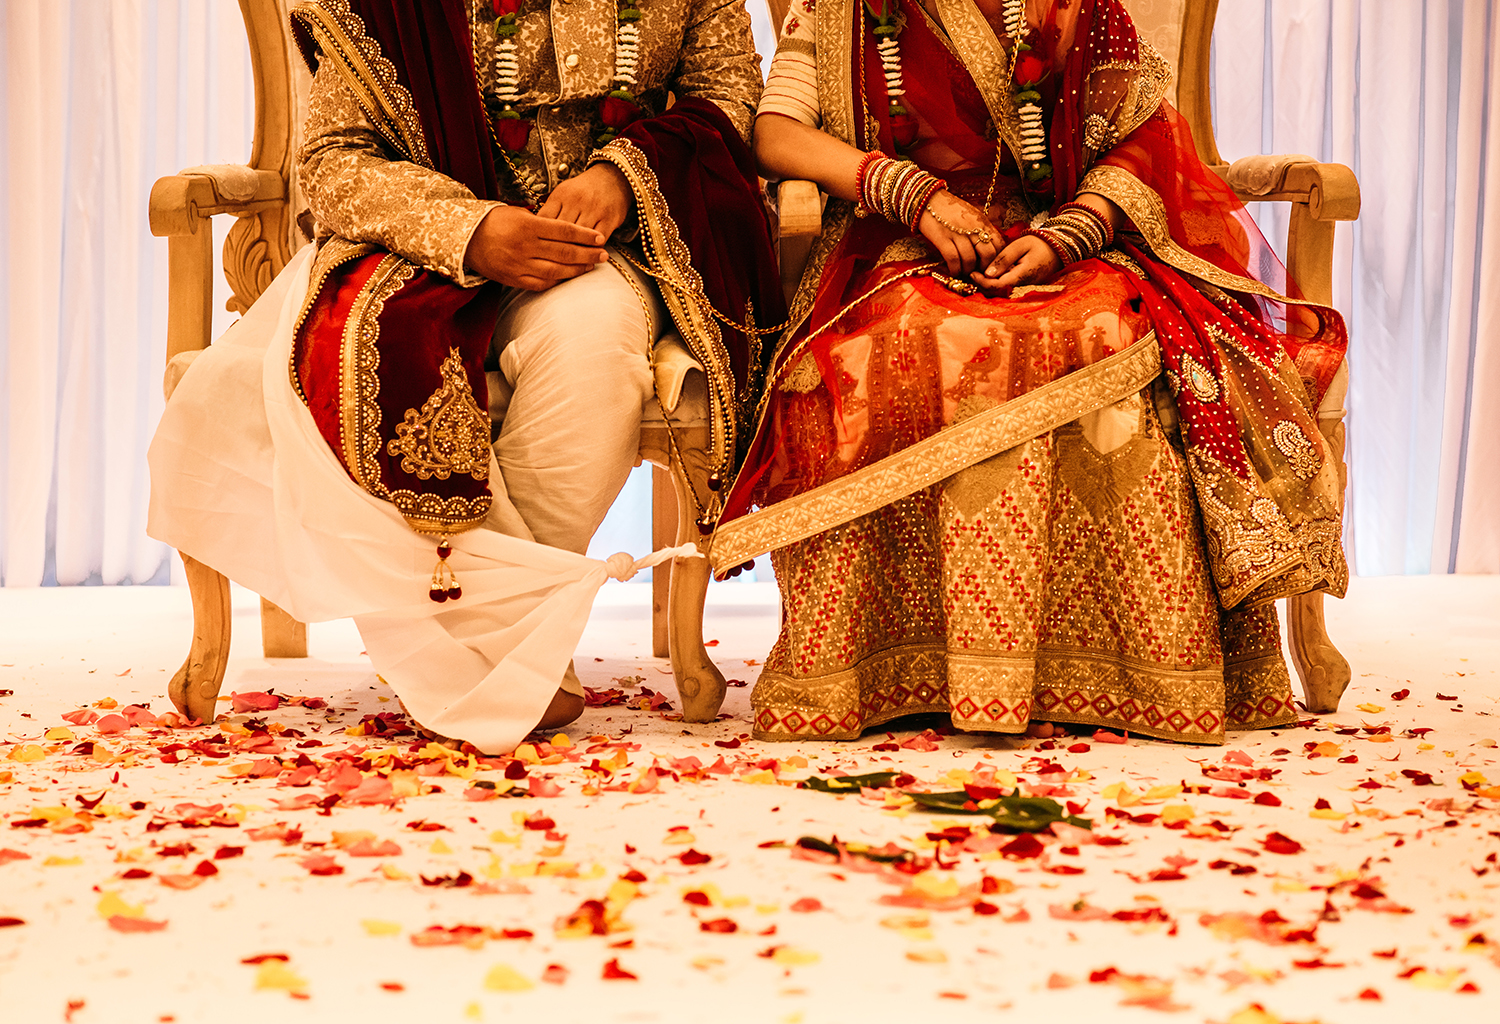 bride and groom from the waist down sat in ceremony chairs with traditional clothes. The floor covered in flower petals